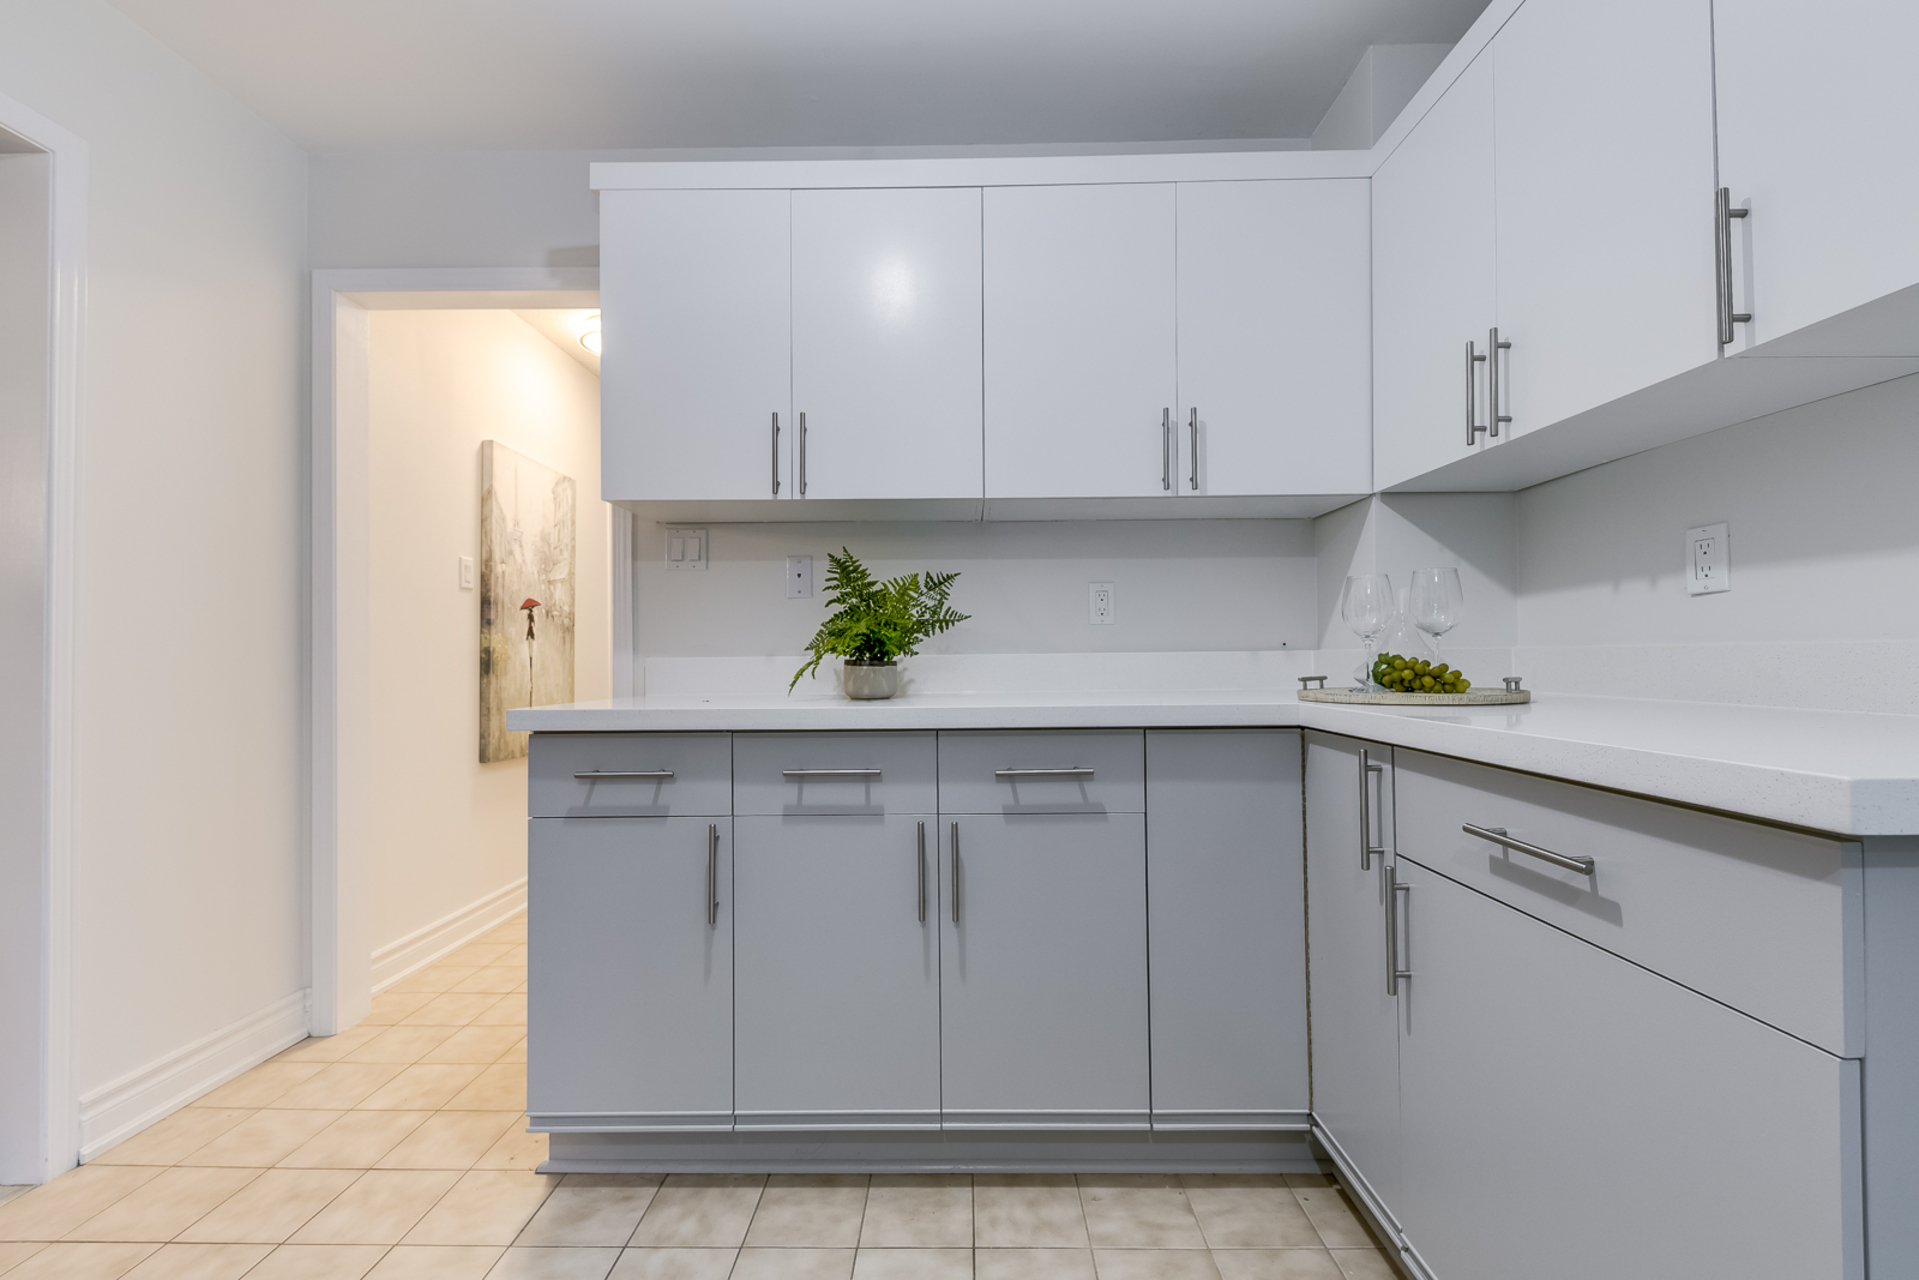 mls-24 at 4246 Wakefield Crescent, Creditview, Mississauga